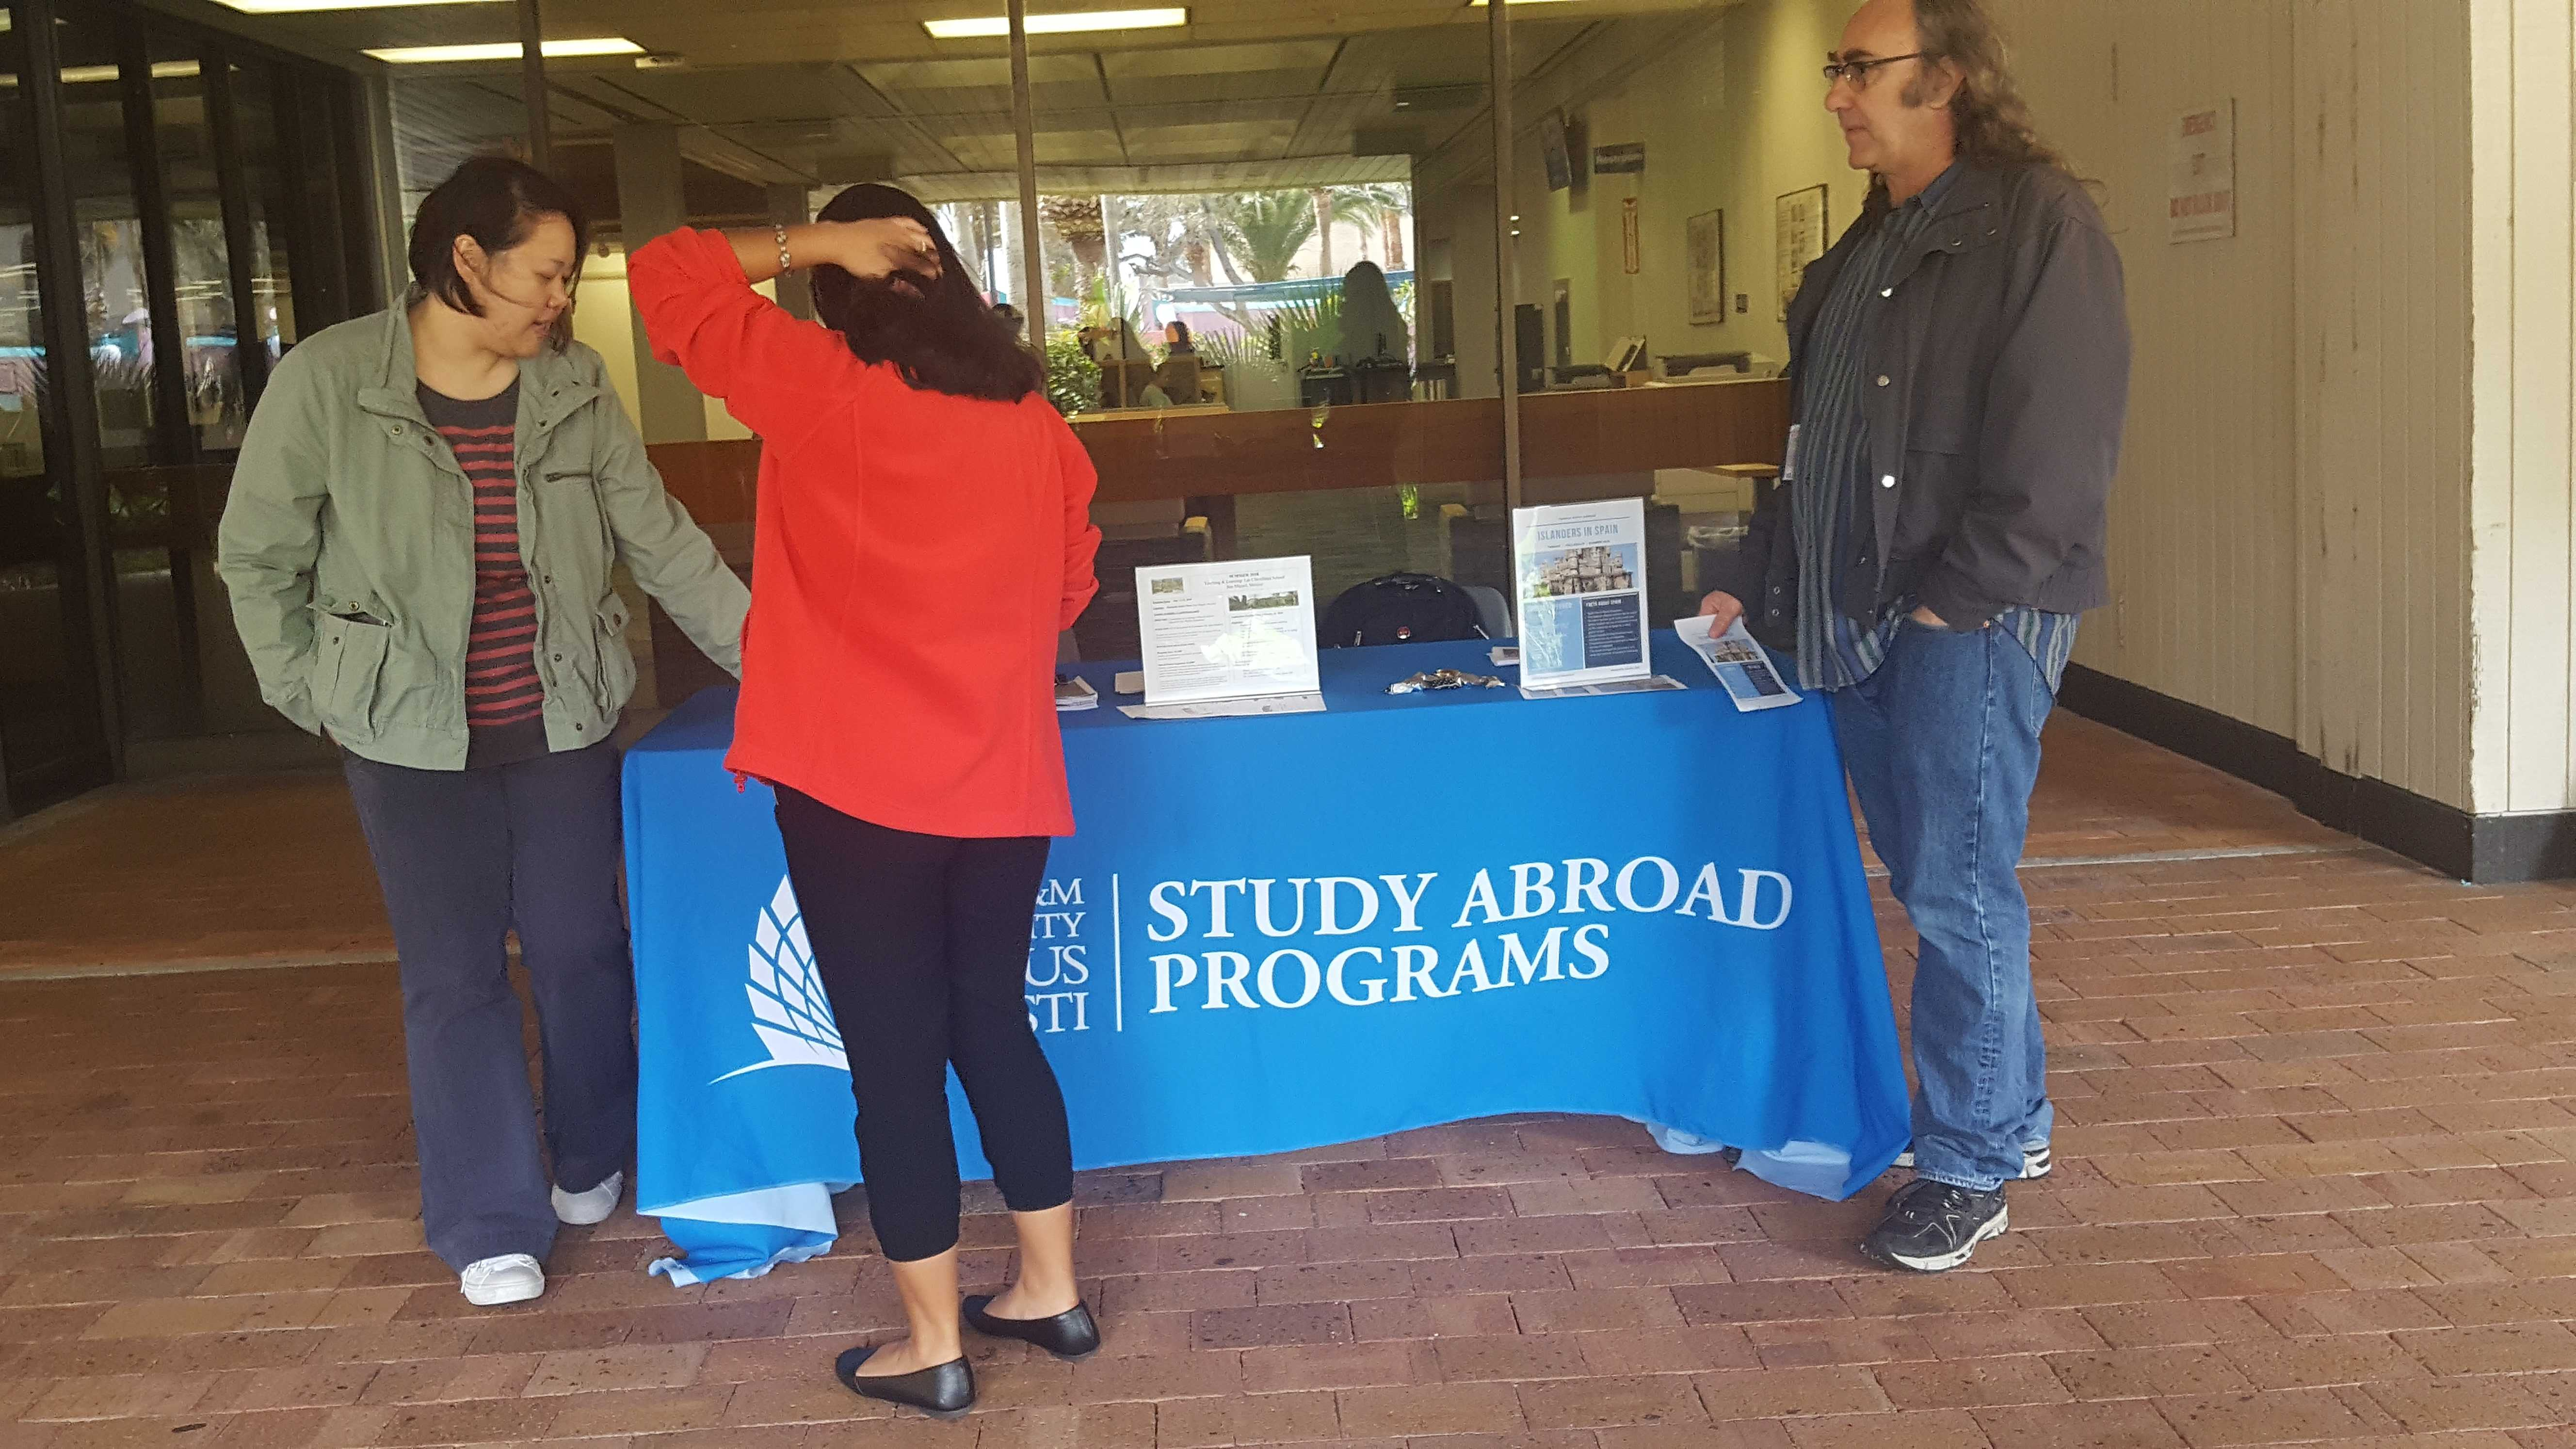 Studying abroad opportunity this summer